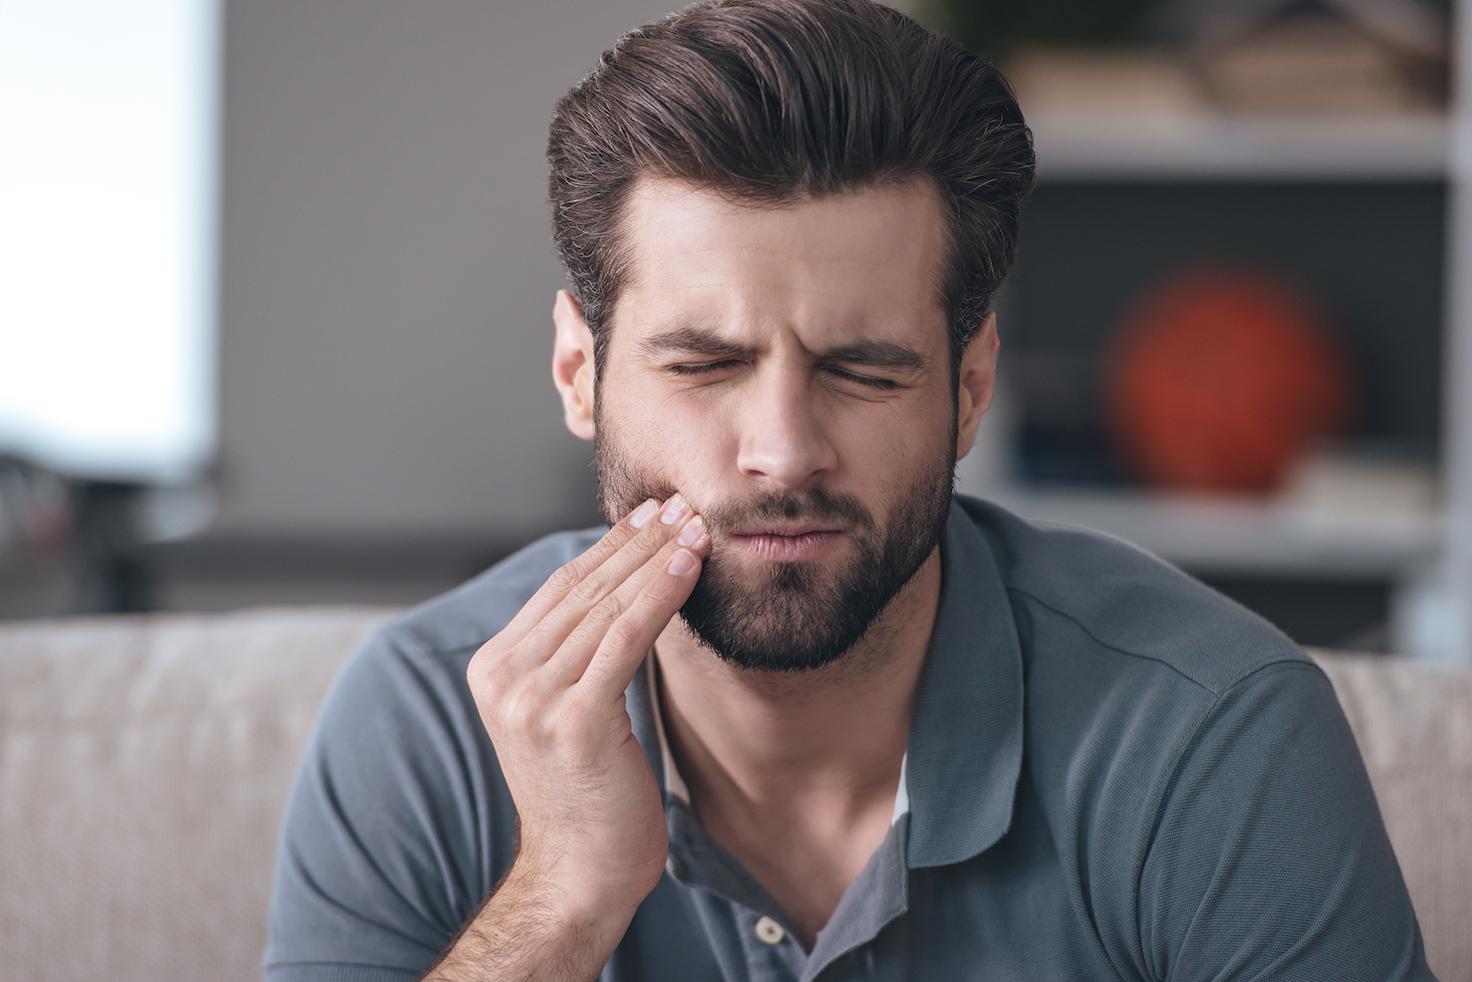 Scientists have discovered properties in saliva that speed up the healing process, which explains why cuts in the mouth heal faster.